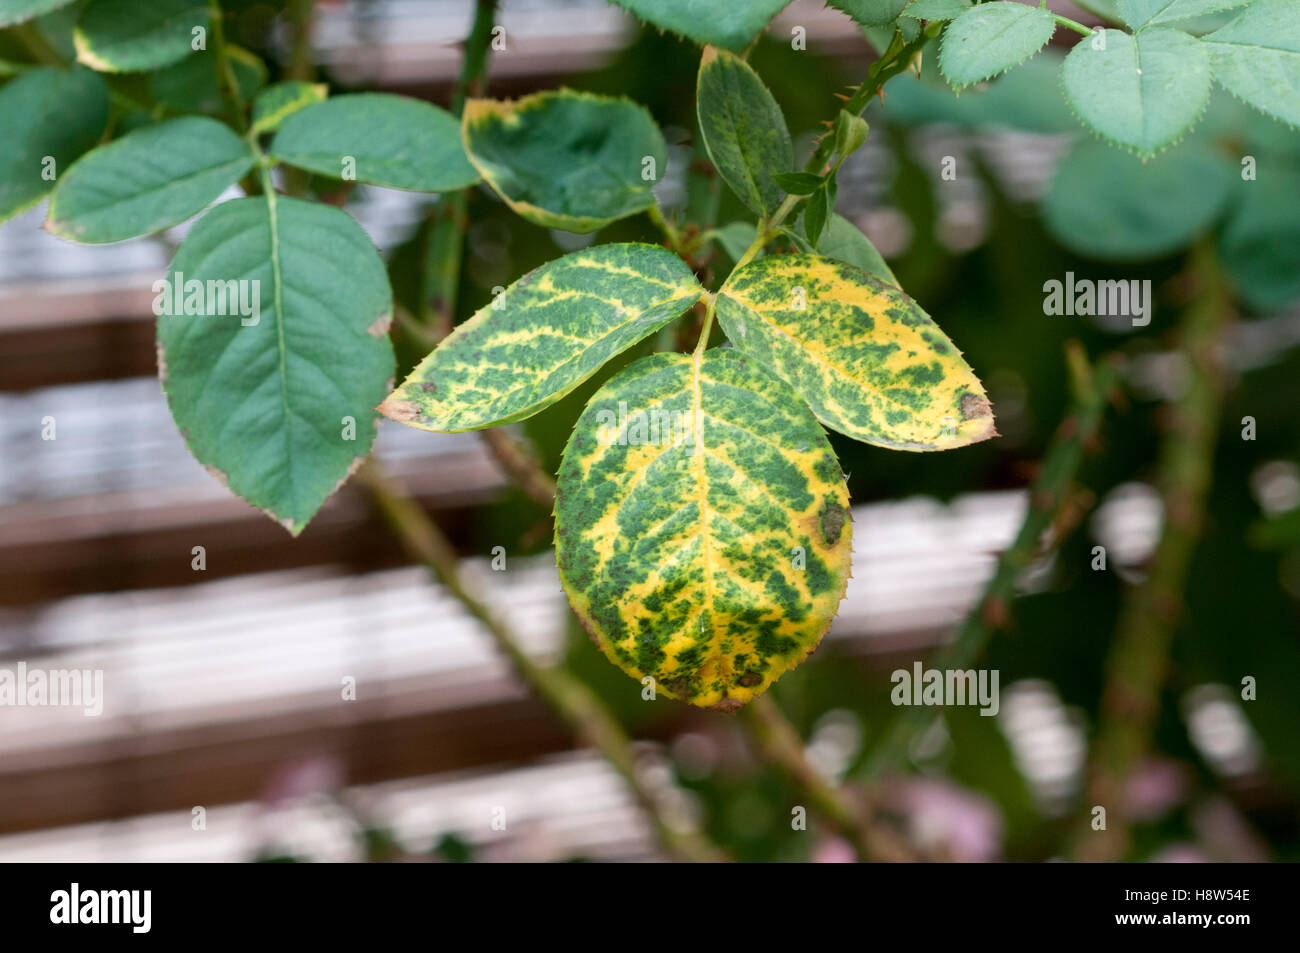 Rose leaf with Mosaic Virus symptoms. Net-like appearance with vein clearing shows infection by complex of virus - Stock Image